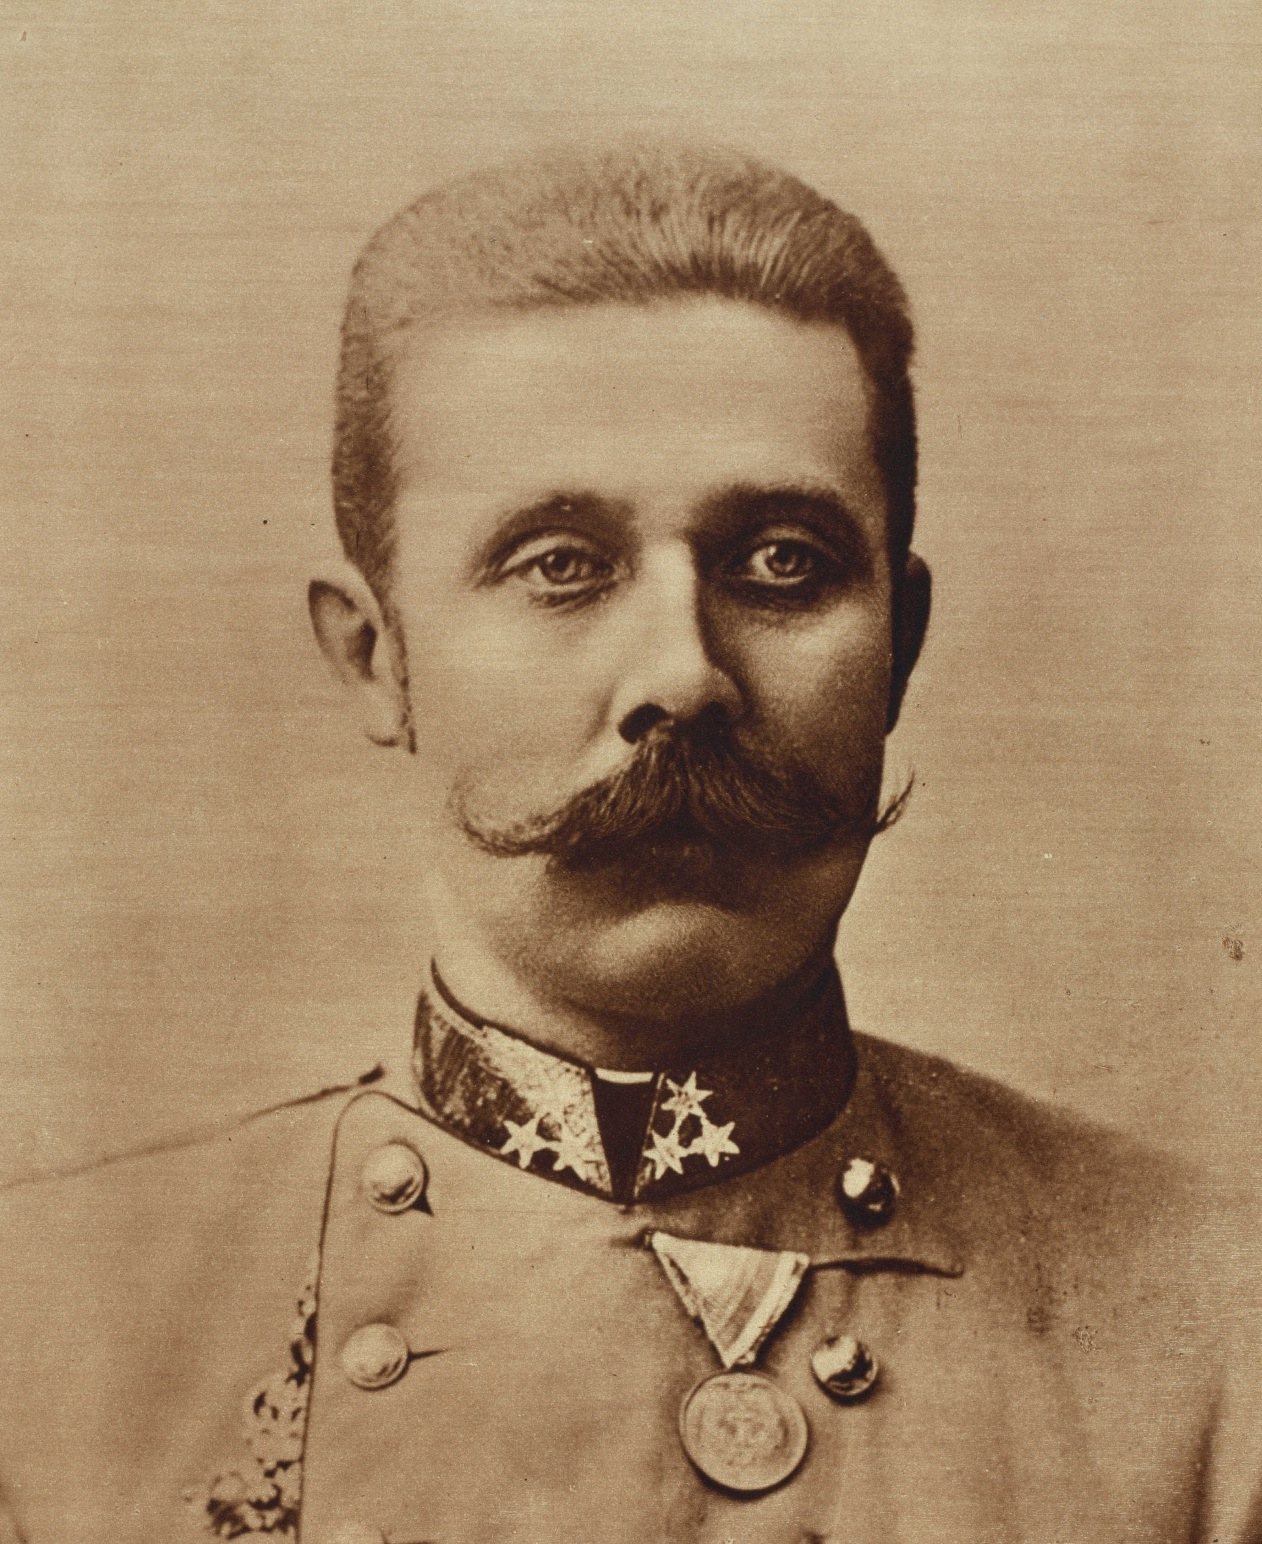 http://upload.wikimedia.org/wikipedia/commons/4/4c/Franz_ferdinand.jpg